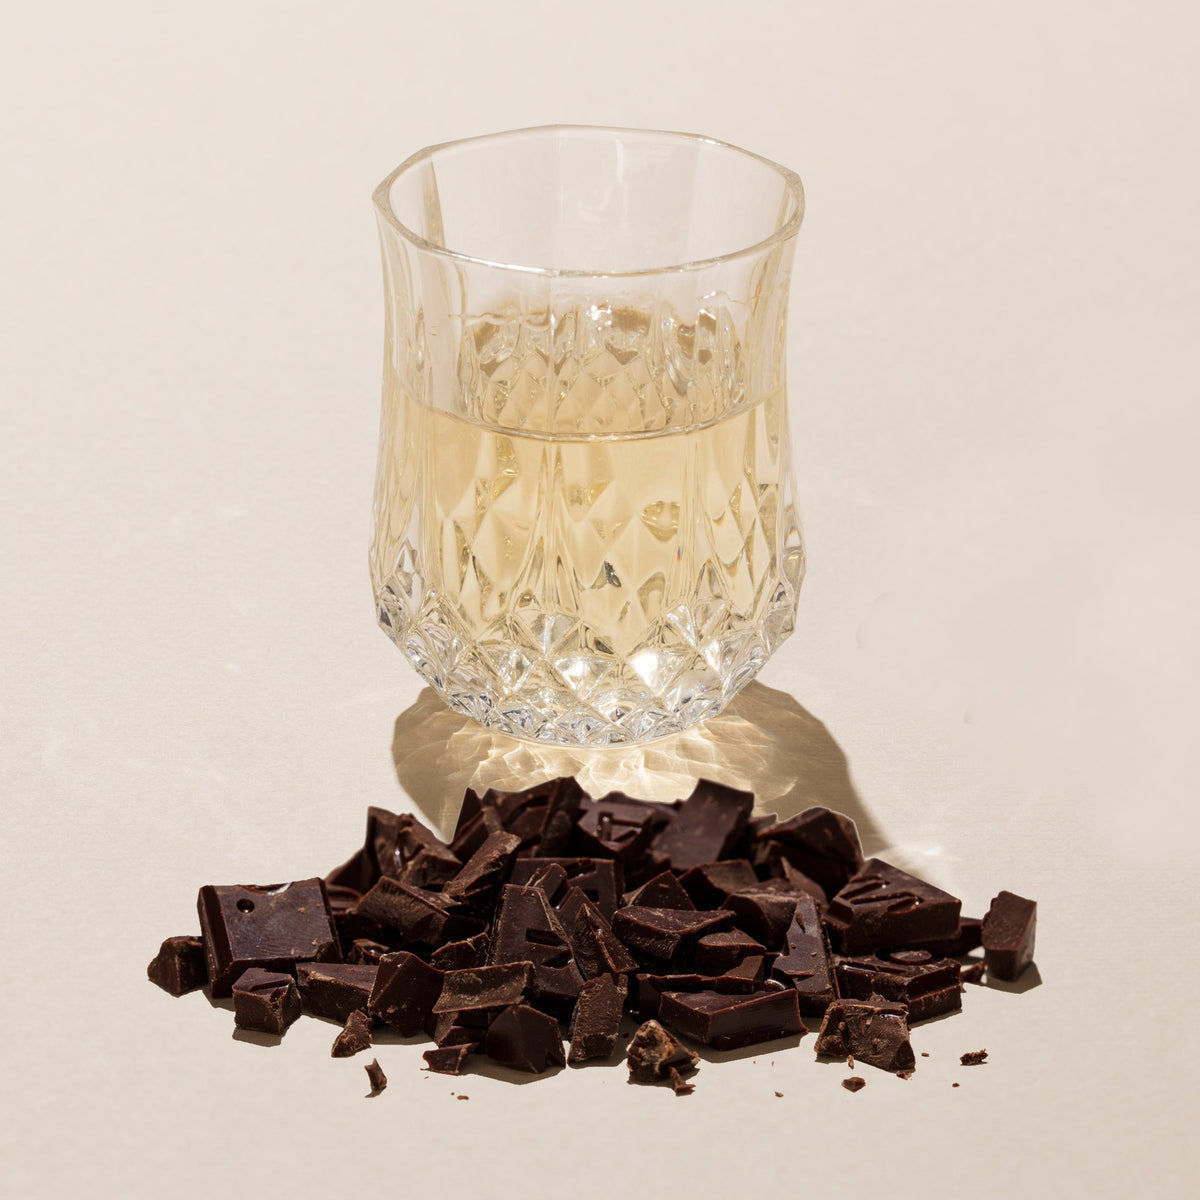 Cuna de Piedra 73% Mexican Dark Chocolate with Mezcal Reposado